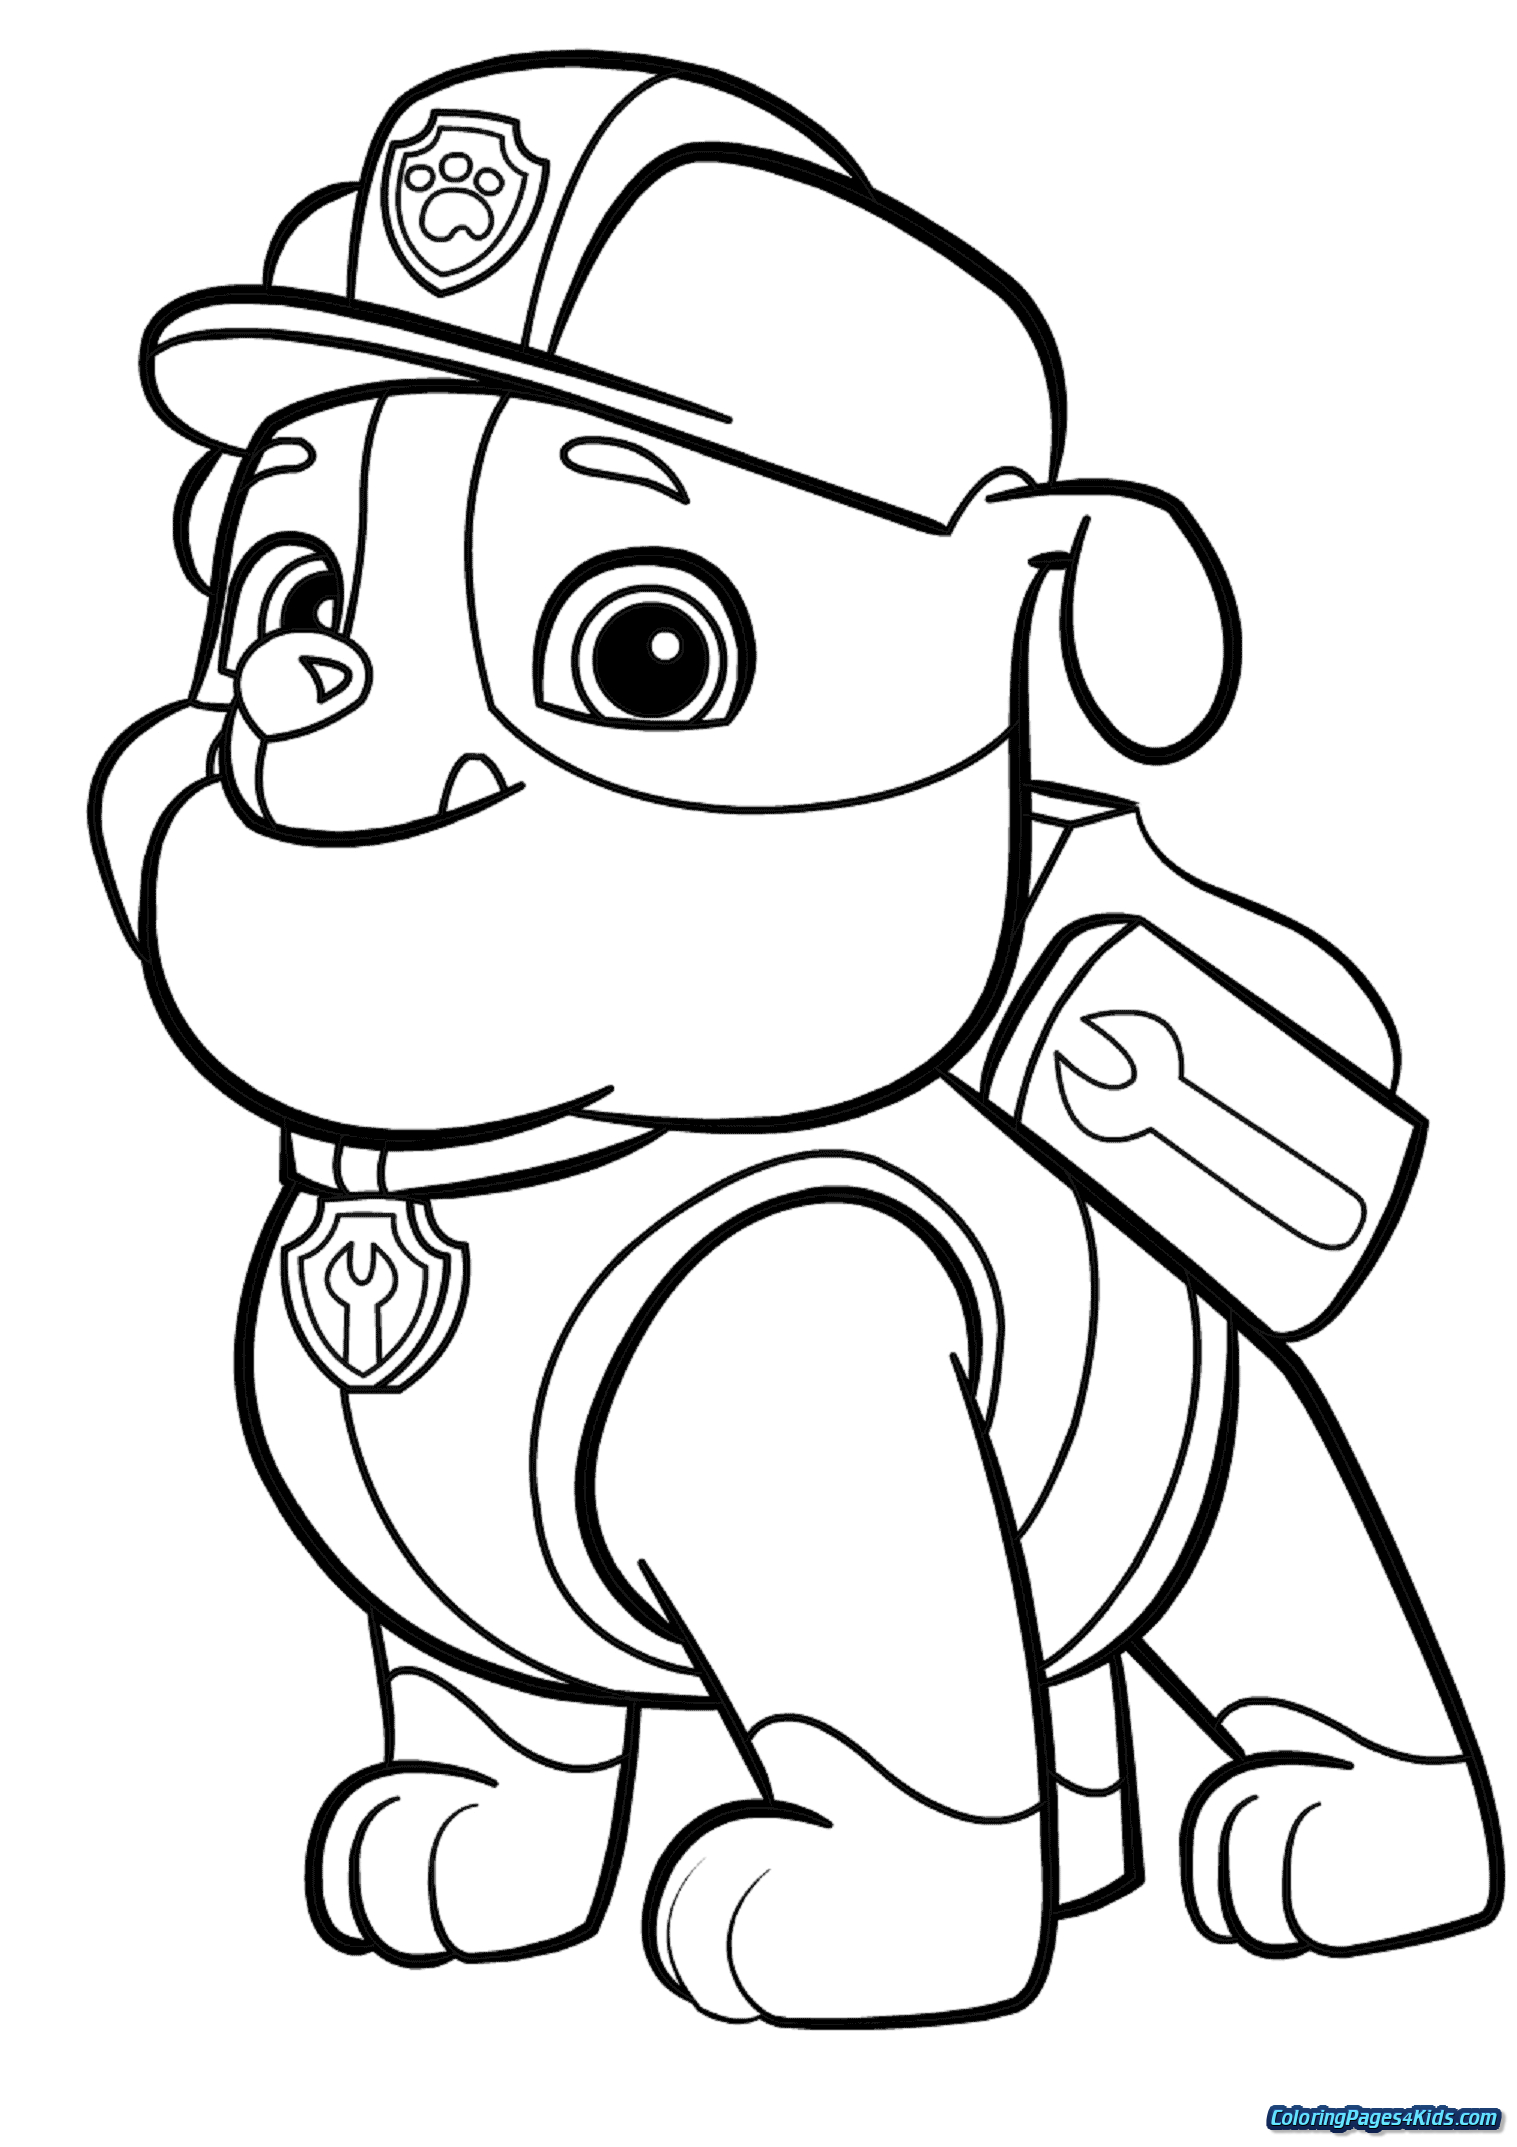 print paw patrol coloring pages paw patrol coloring pages printable paw patrol coloring coloring print patrol pages paw